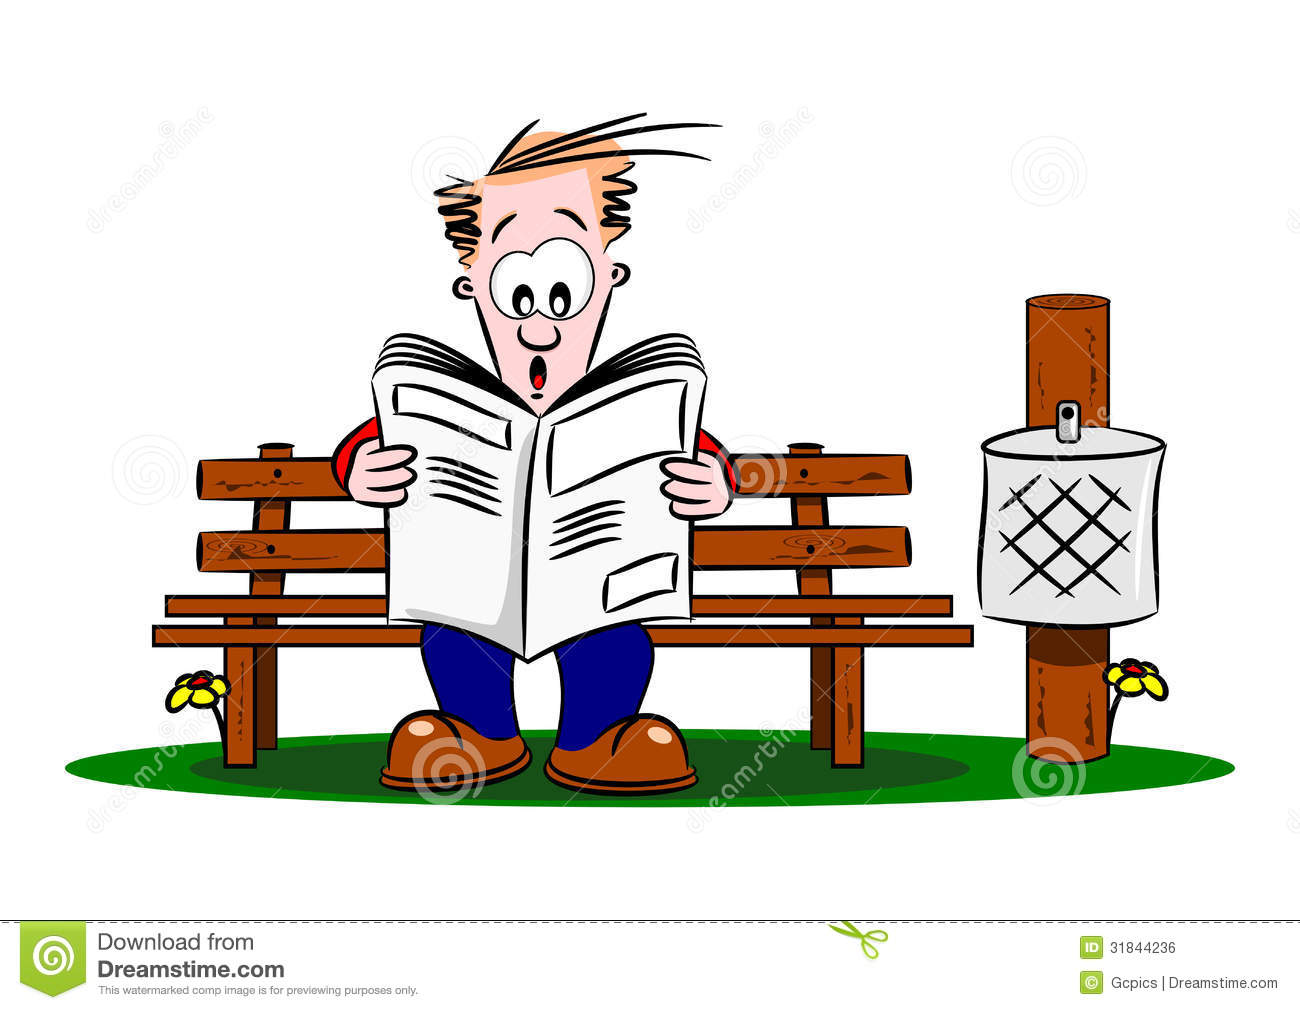 ... Guy Reading A Newspaper Royalty Free Stock Image - Image: 31844236